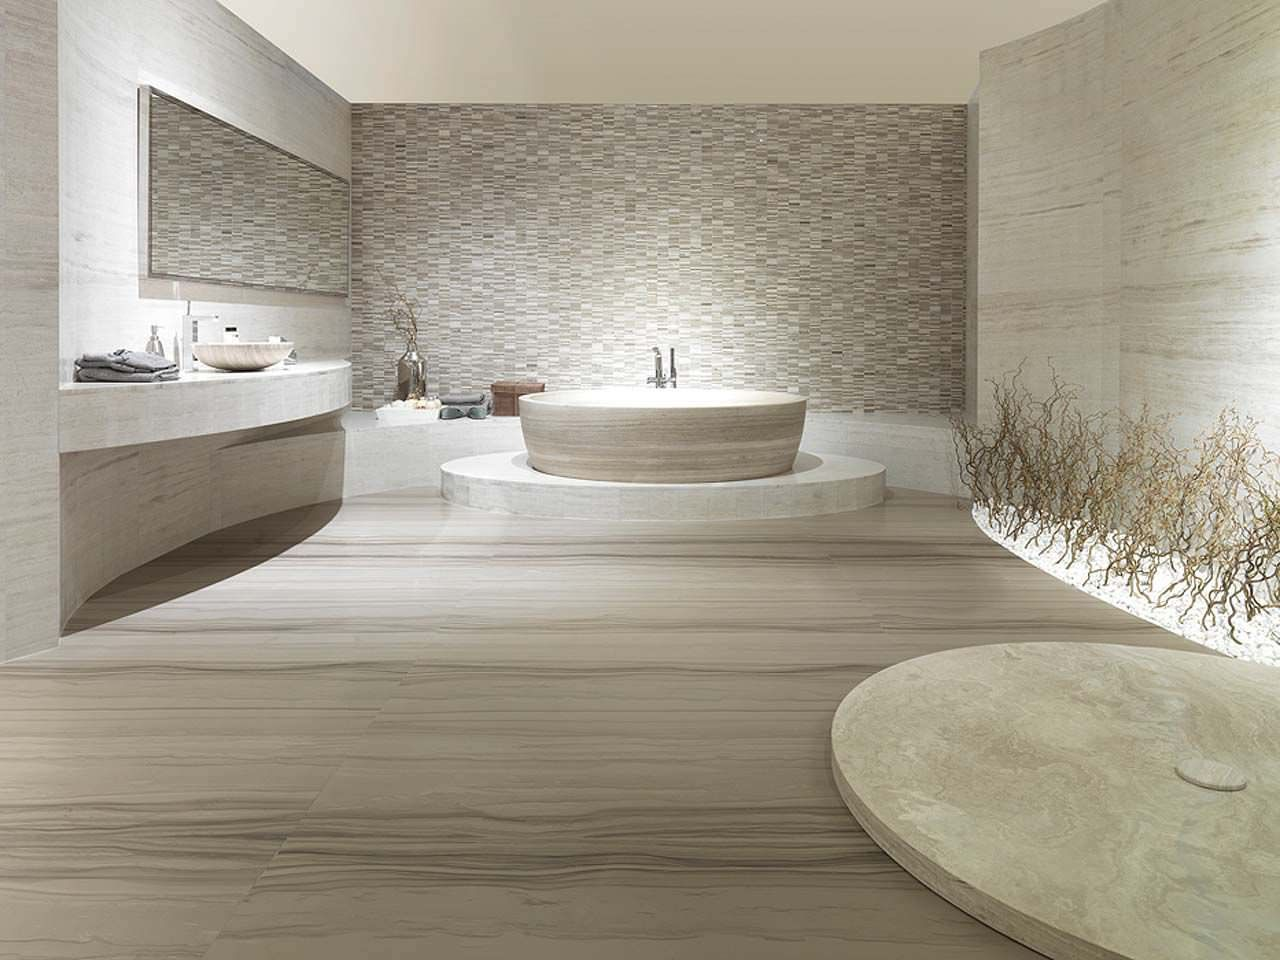 Carrelage de salle de bain de sol en travertin poli for Porcelanosa carrelage sol